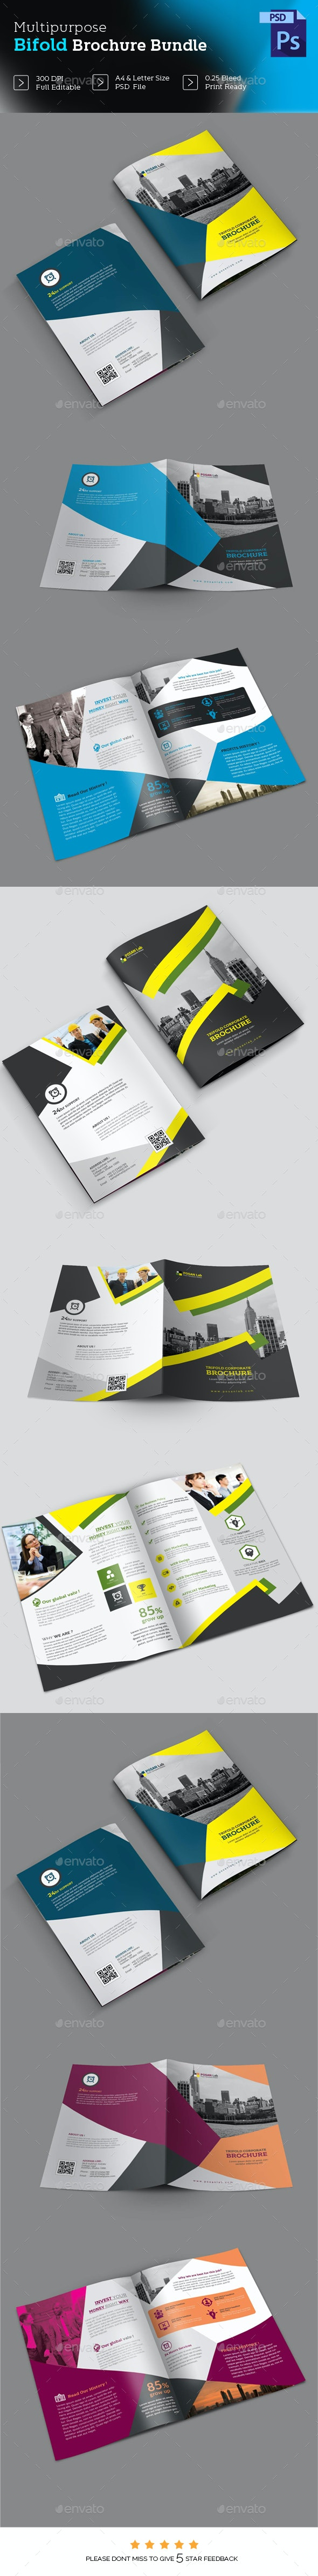 Bifold Business Brochure Bundle - Brochures Print Templates